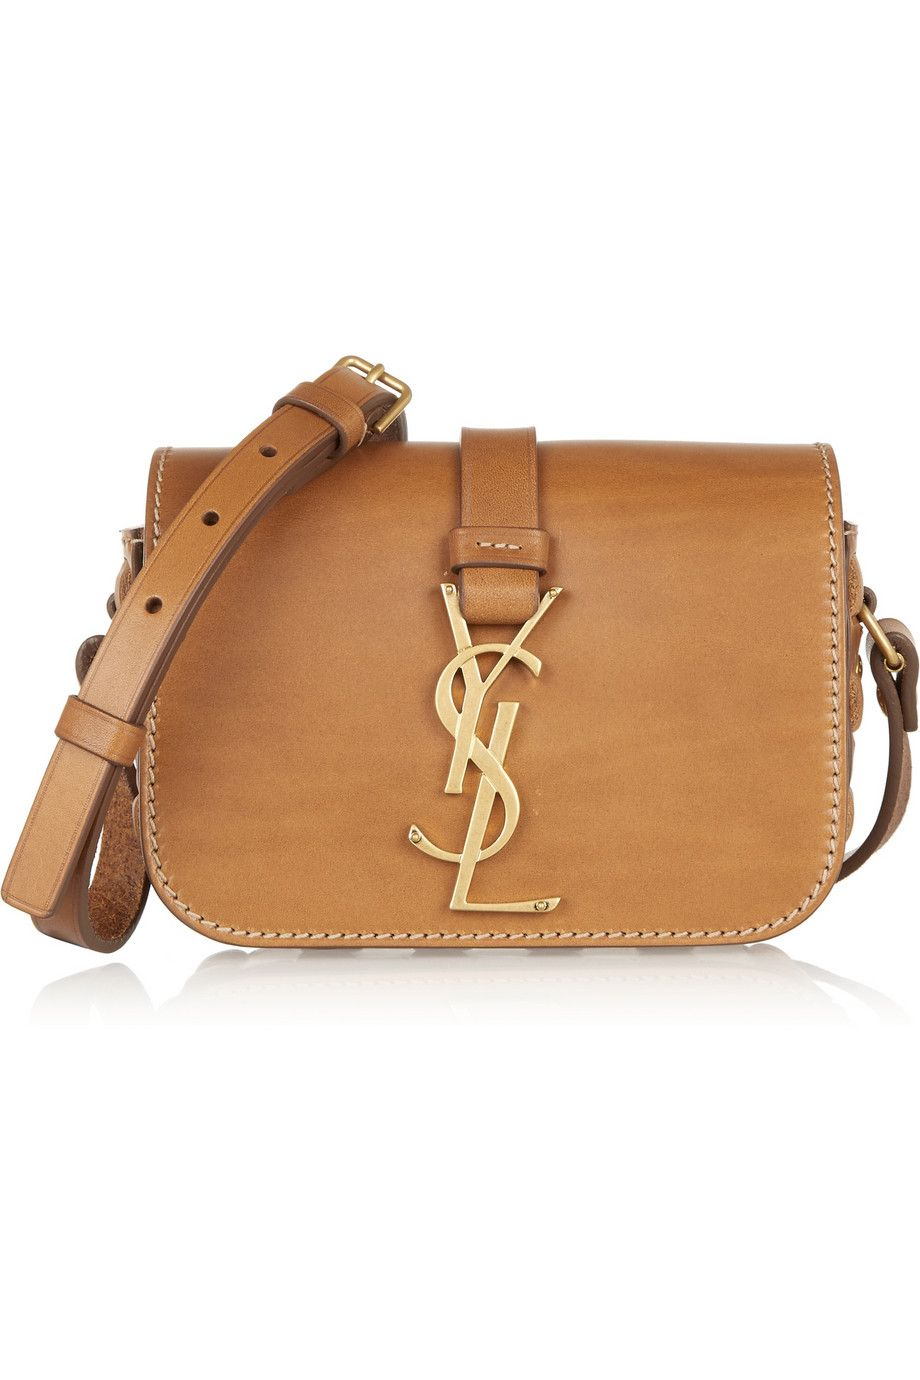 ea22db9617fe Saint Laurent Monogramme Sac Shoulder Bag in Tan Leather with Stitch Detail